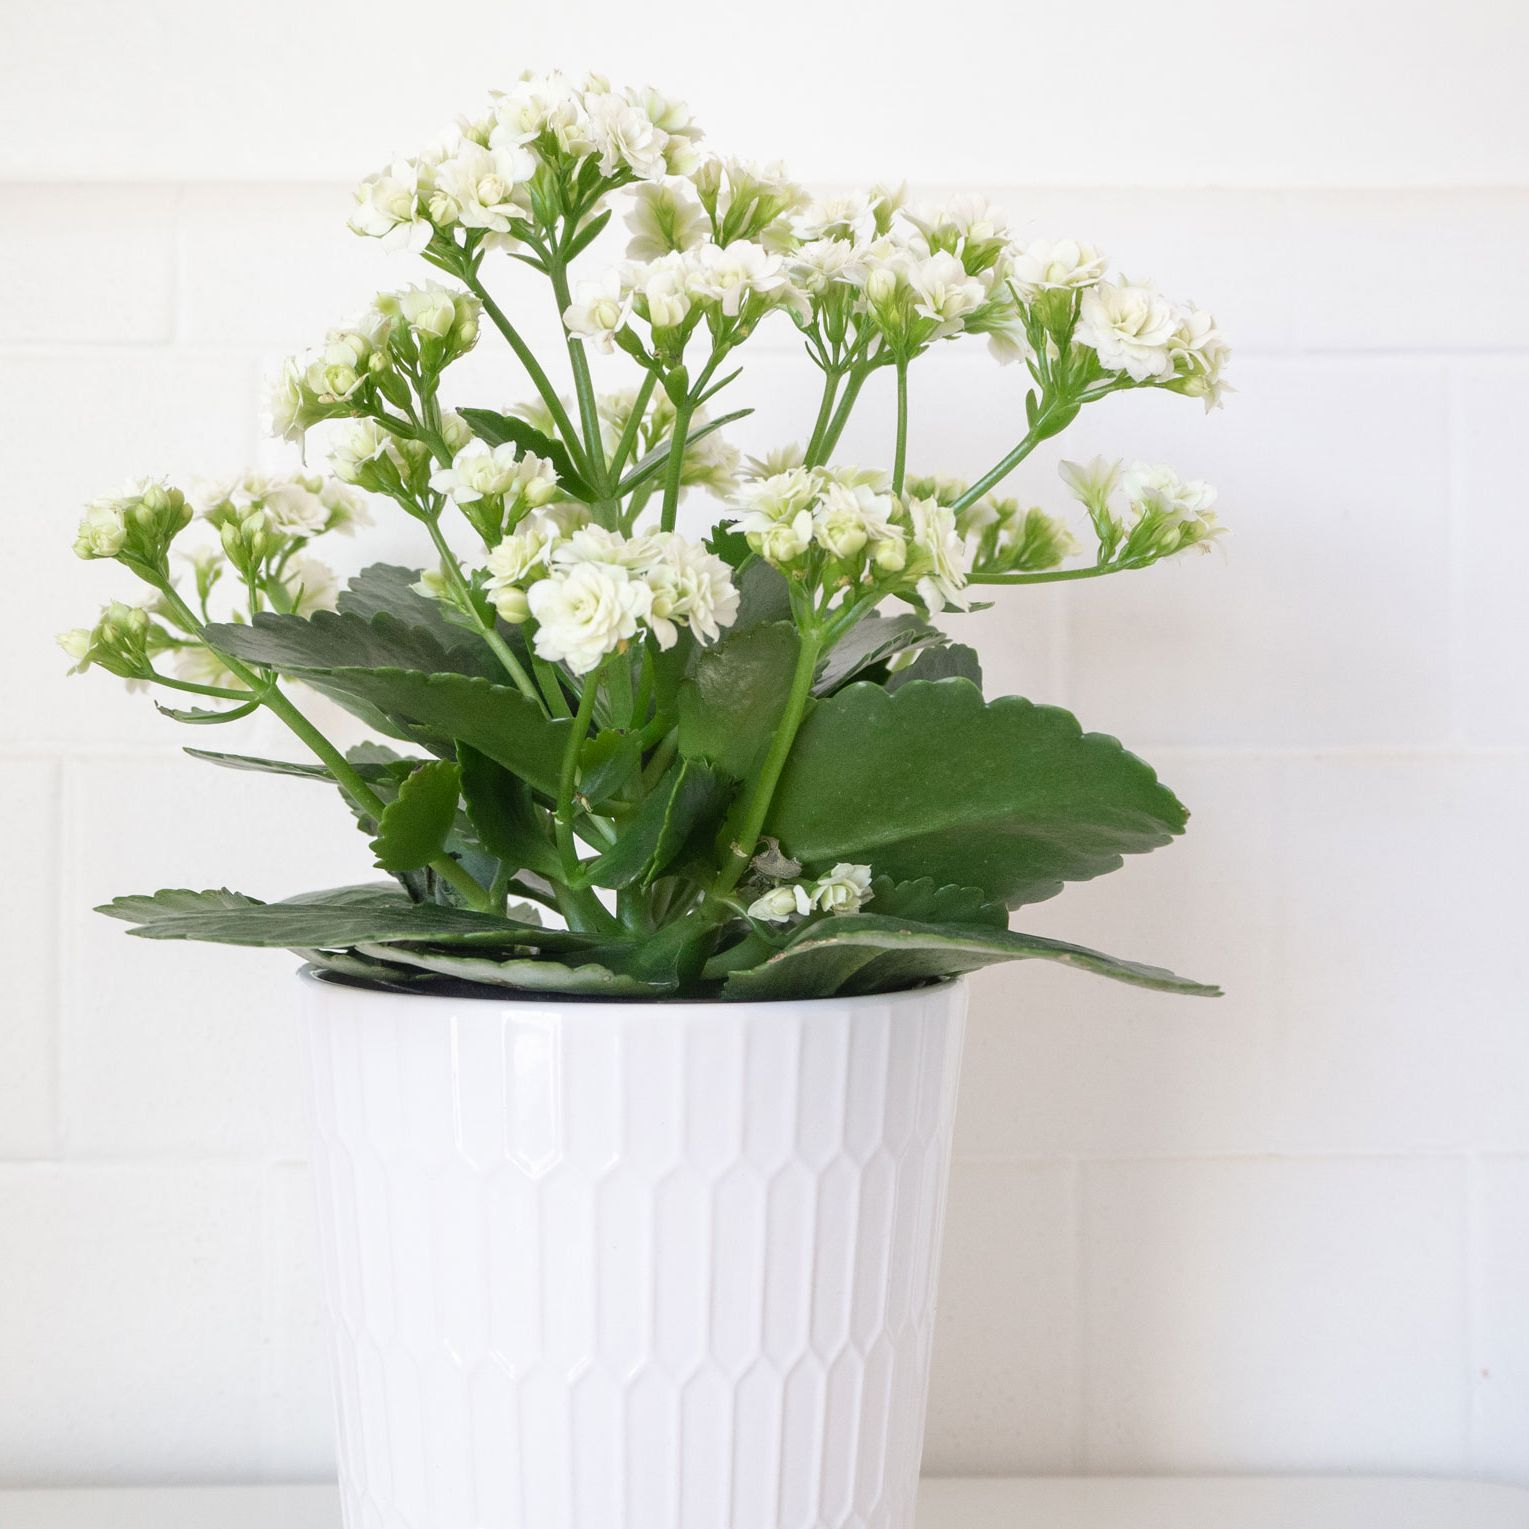 Kalanchoe: Indoor Plant Care & Growing Guide